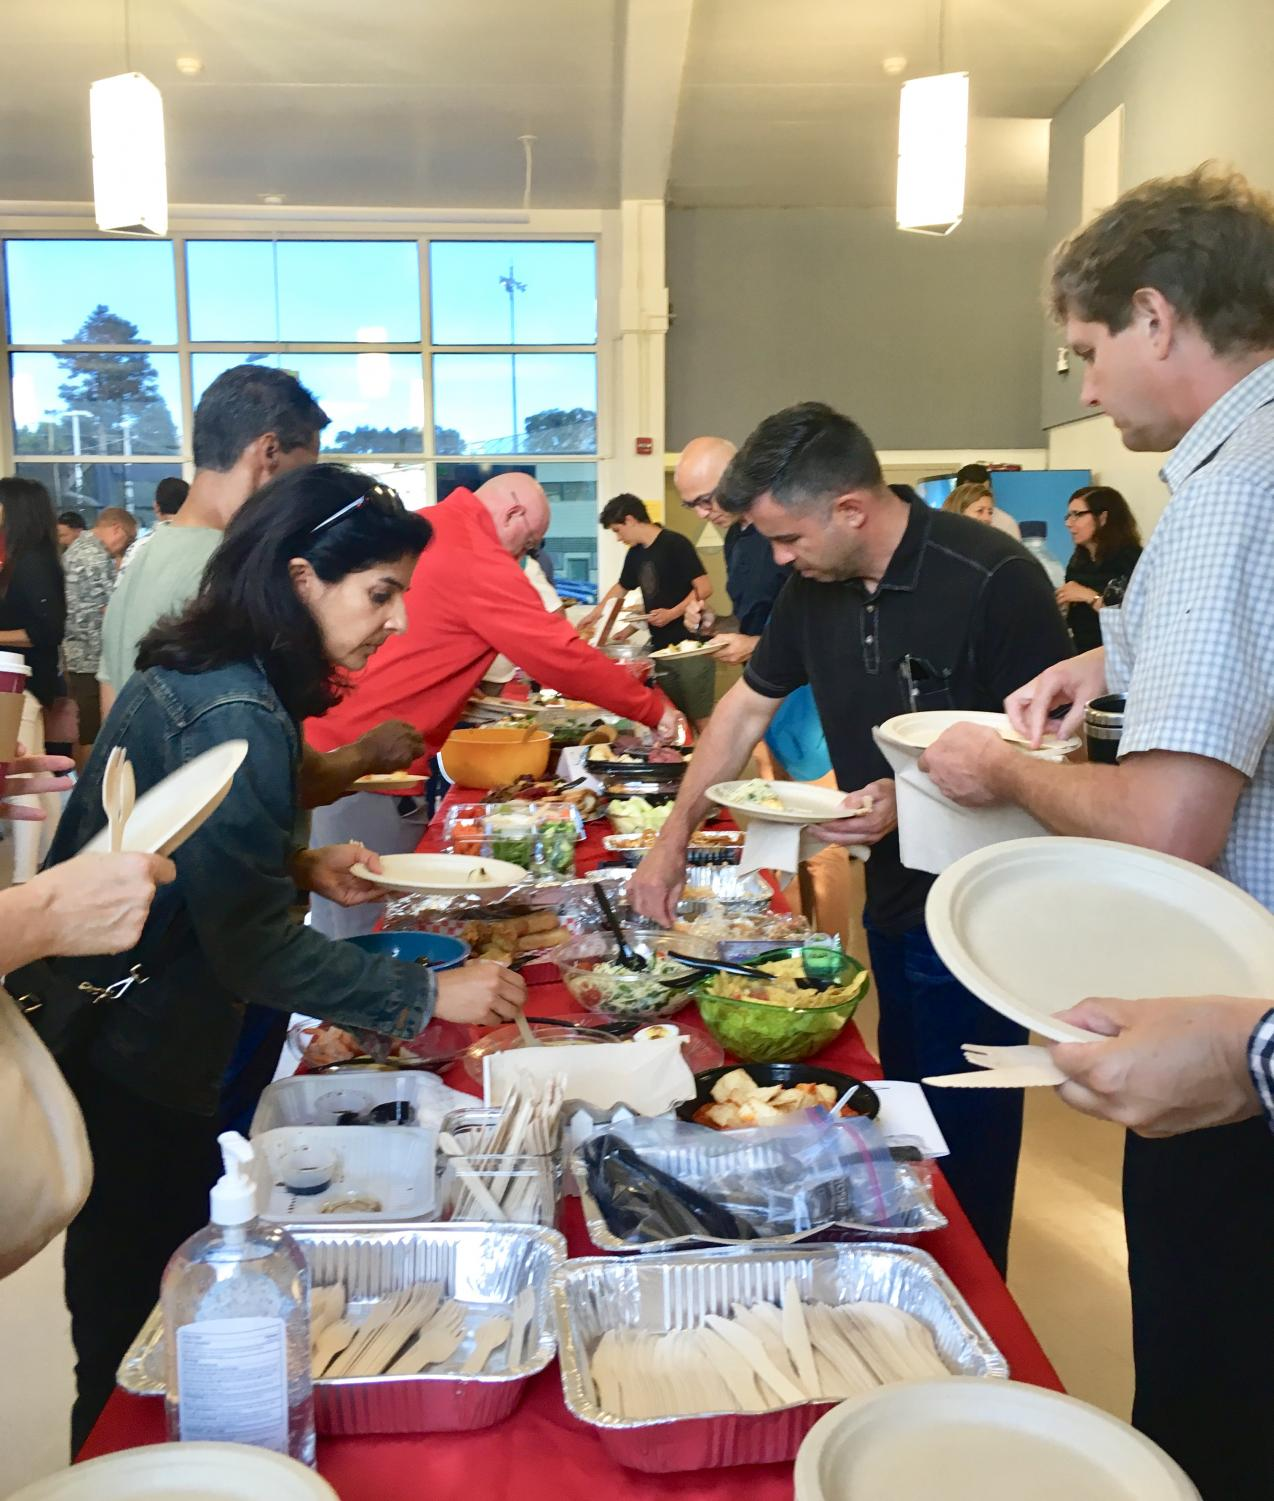 Families and teachers kick off the school year with the annual Back-to-School Potluck.